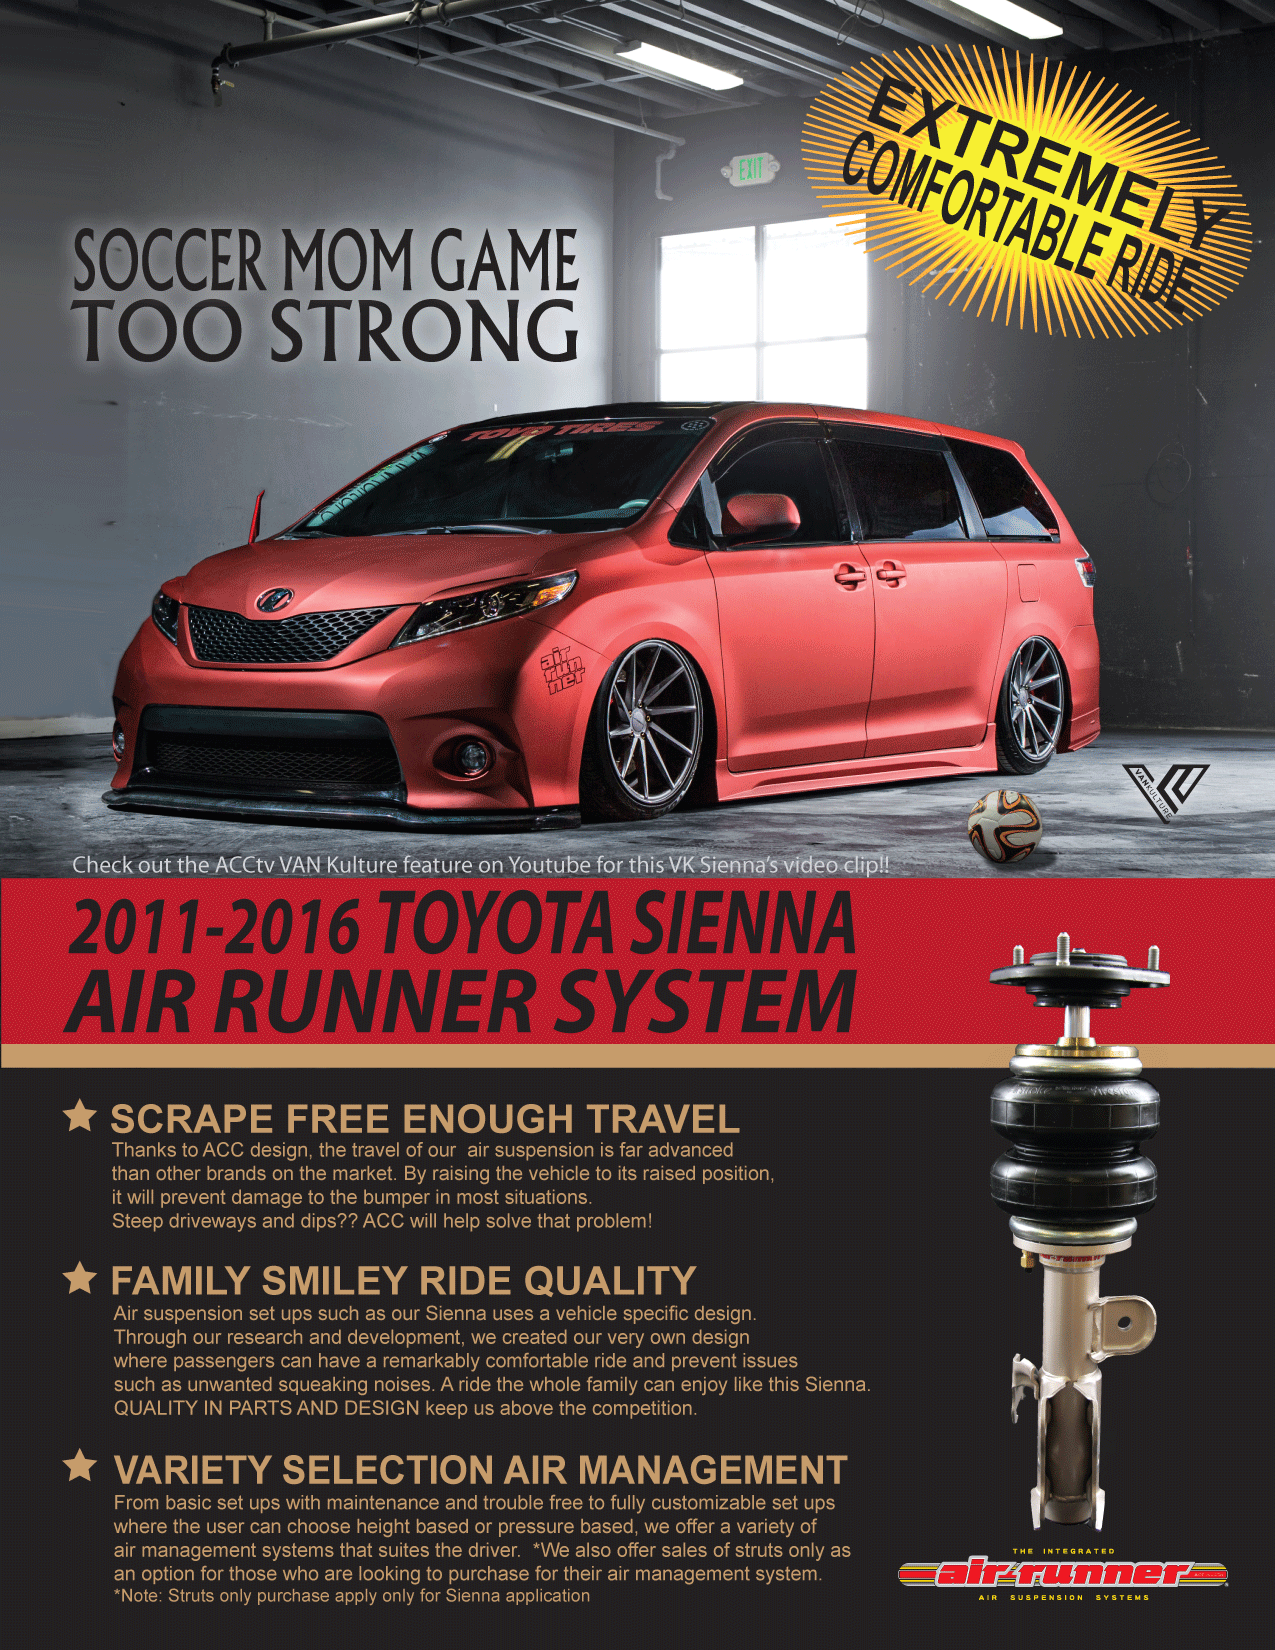 TOYOTA SIENNA AIRRUNNER UPGRADE and More | Air Runner Systems